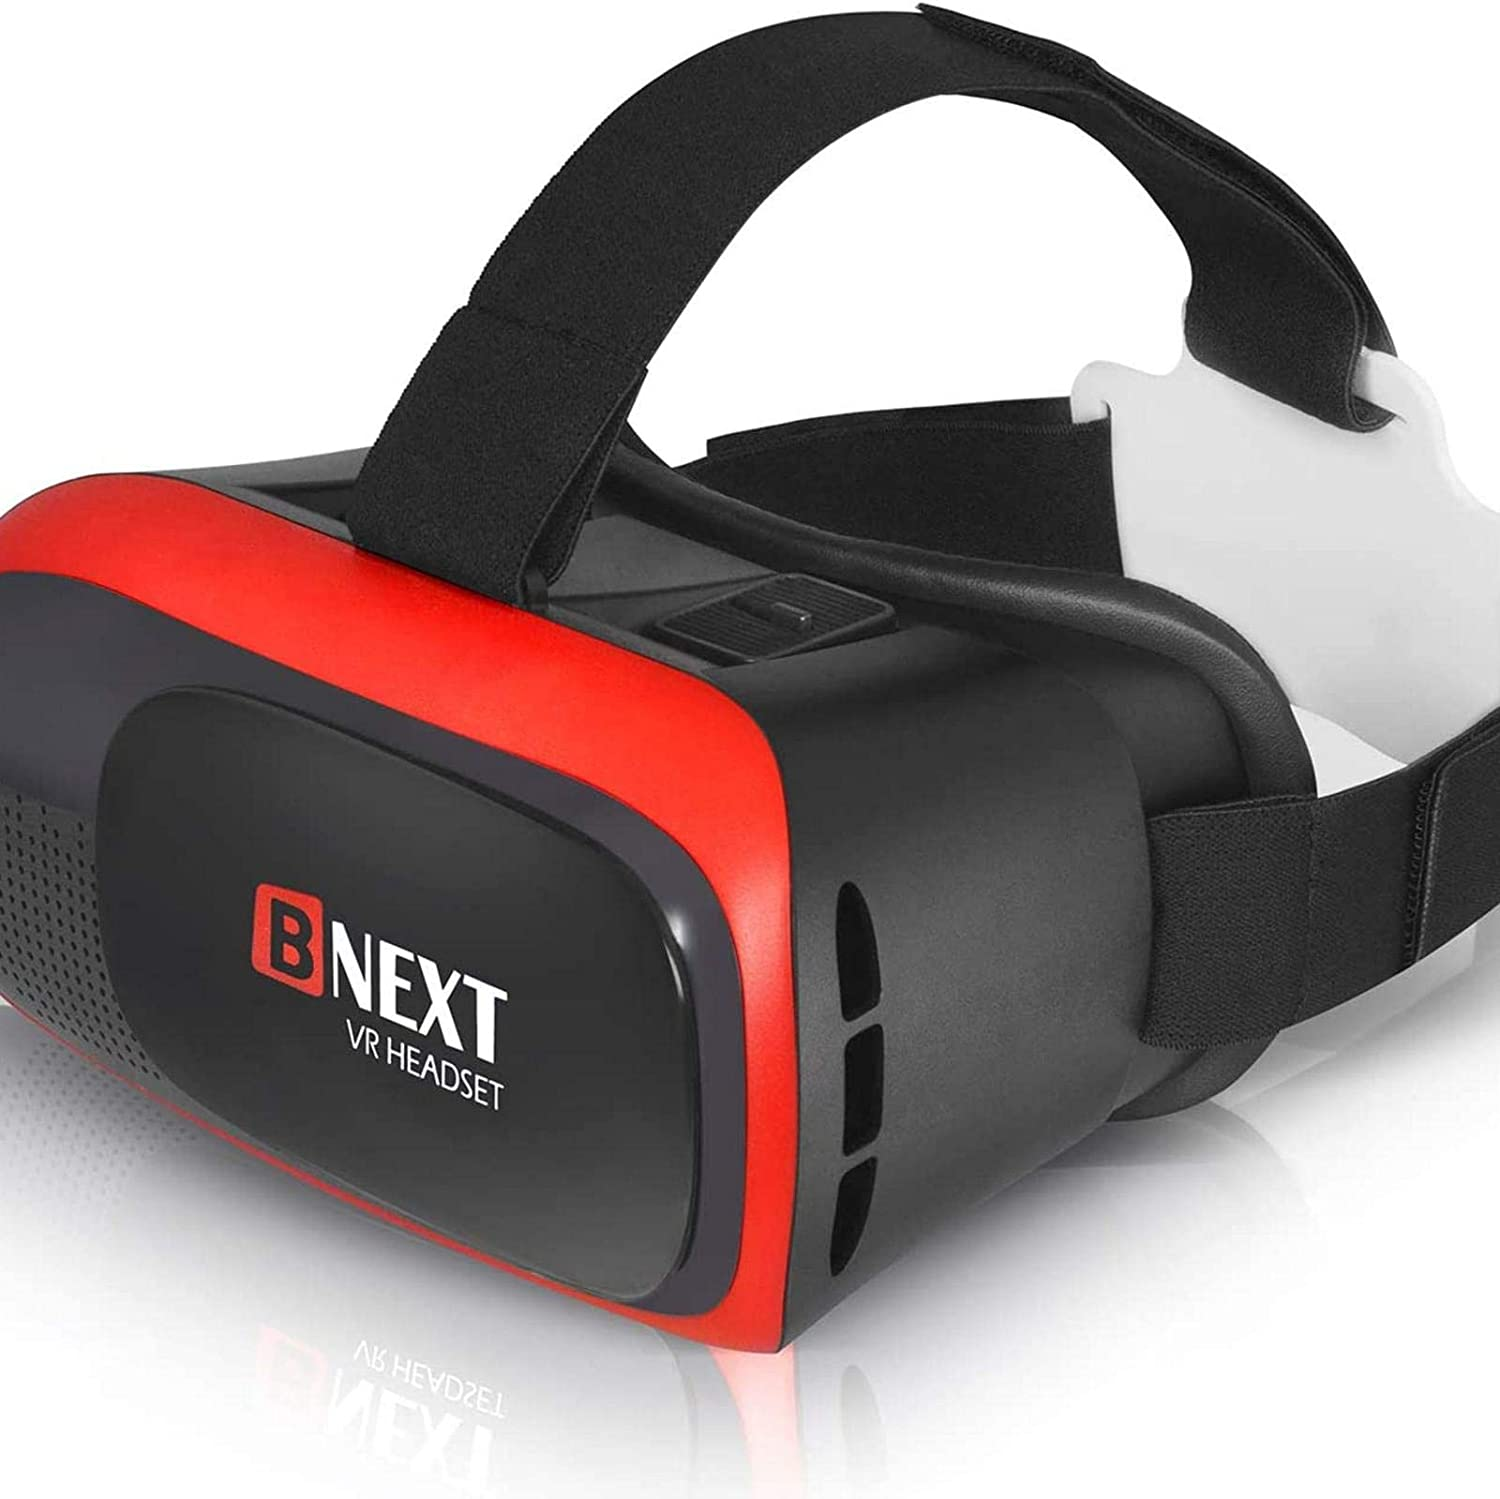 BNEXT VR Headset Compatible with iPhone & Android Phone - Universal Virtual Reality Goggles - Play Your Best Mobile Games 360 Movies with Soft & Comfortable New 3D VR Glasses